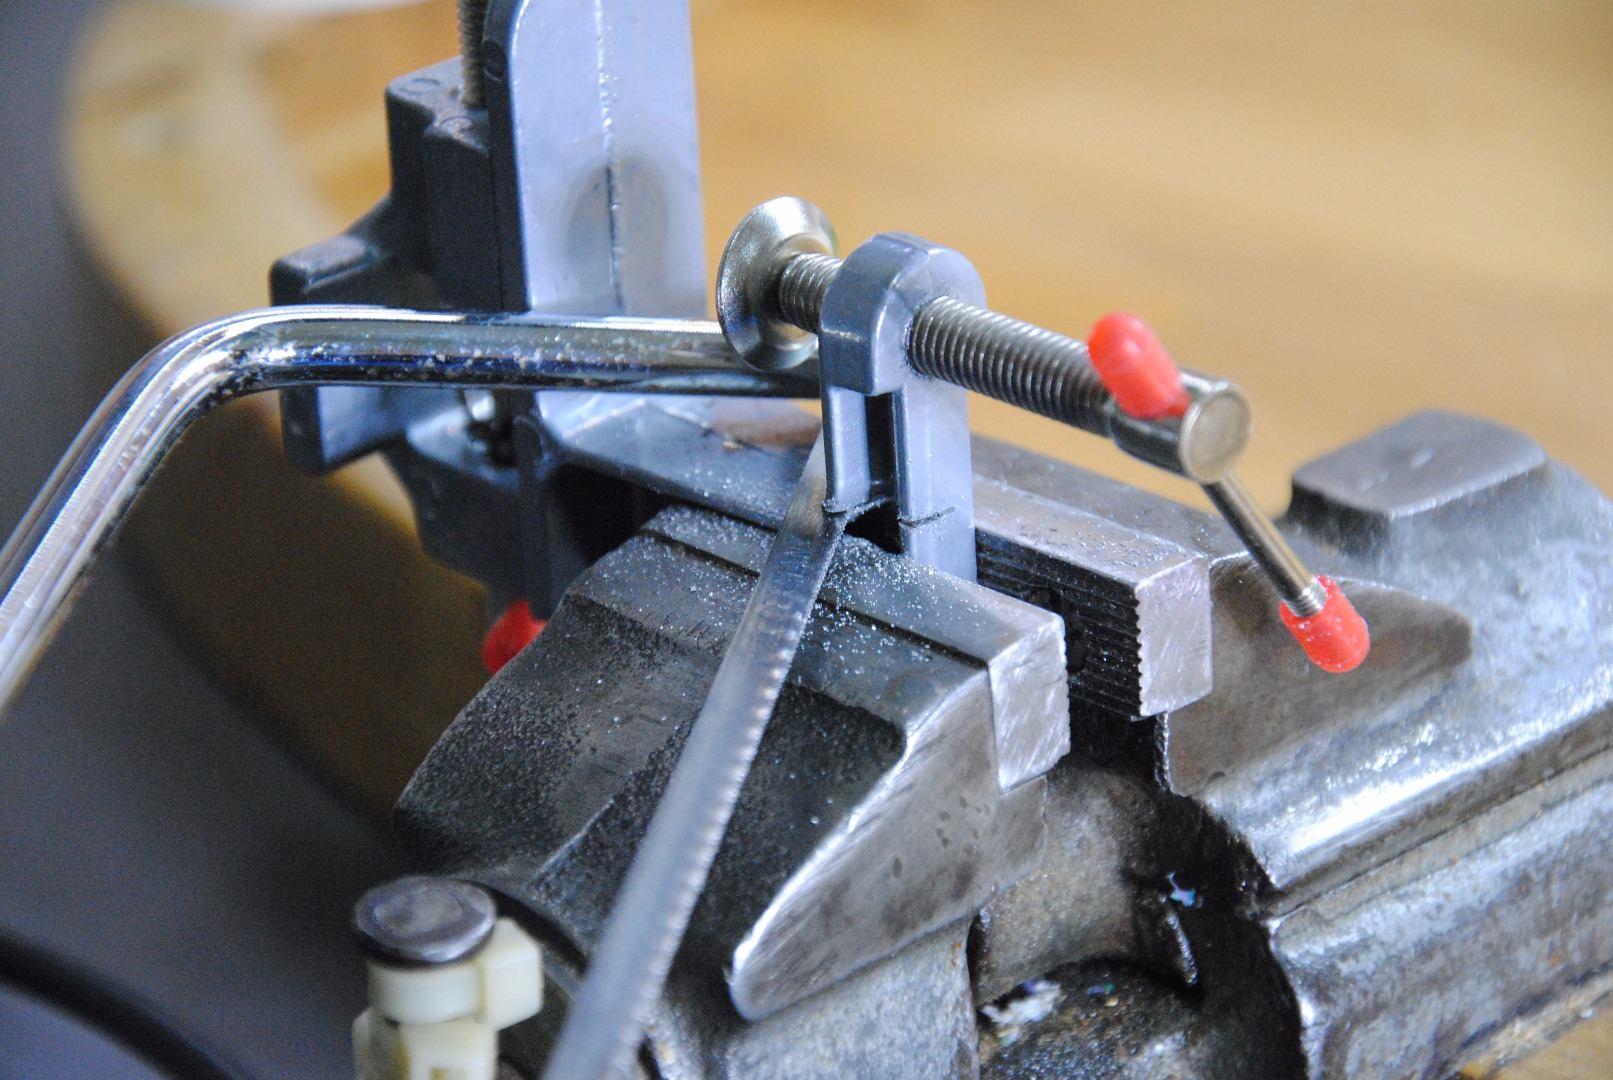 Picture of Saw the Vise (Saw Off the Screw Part)